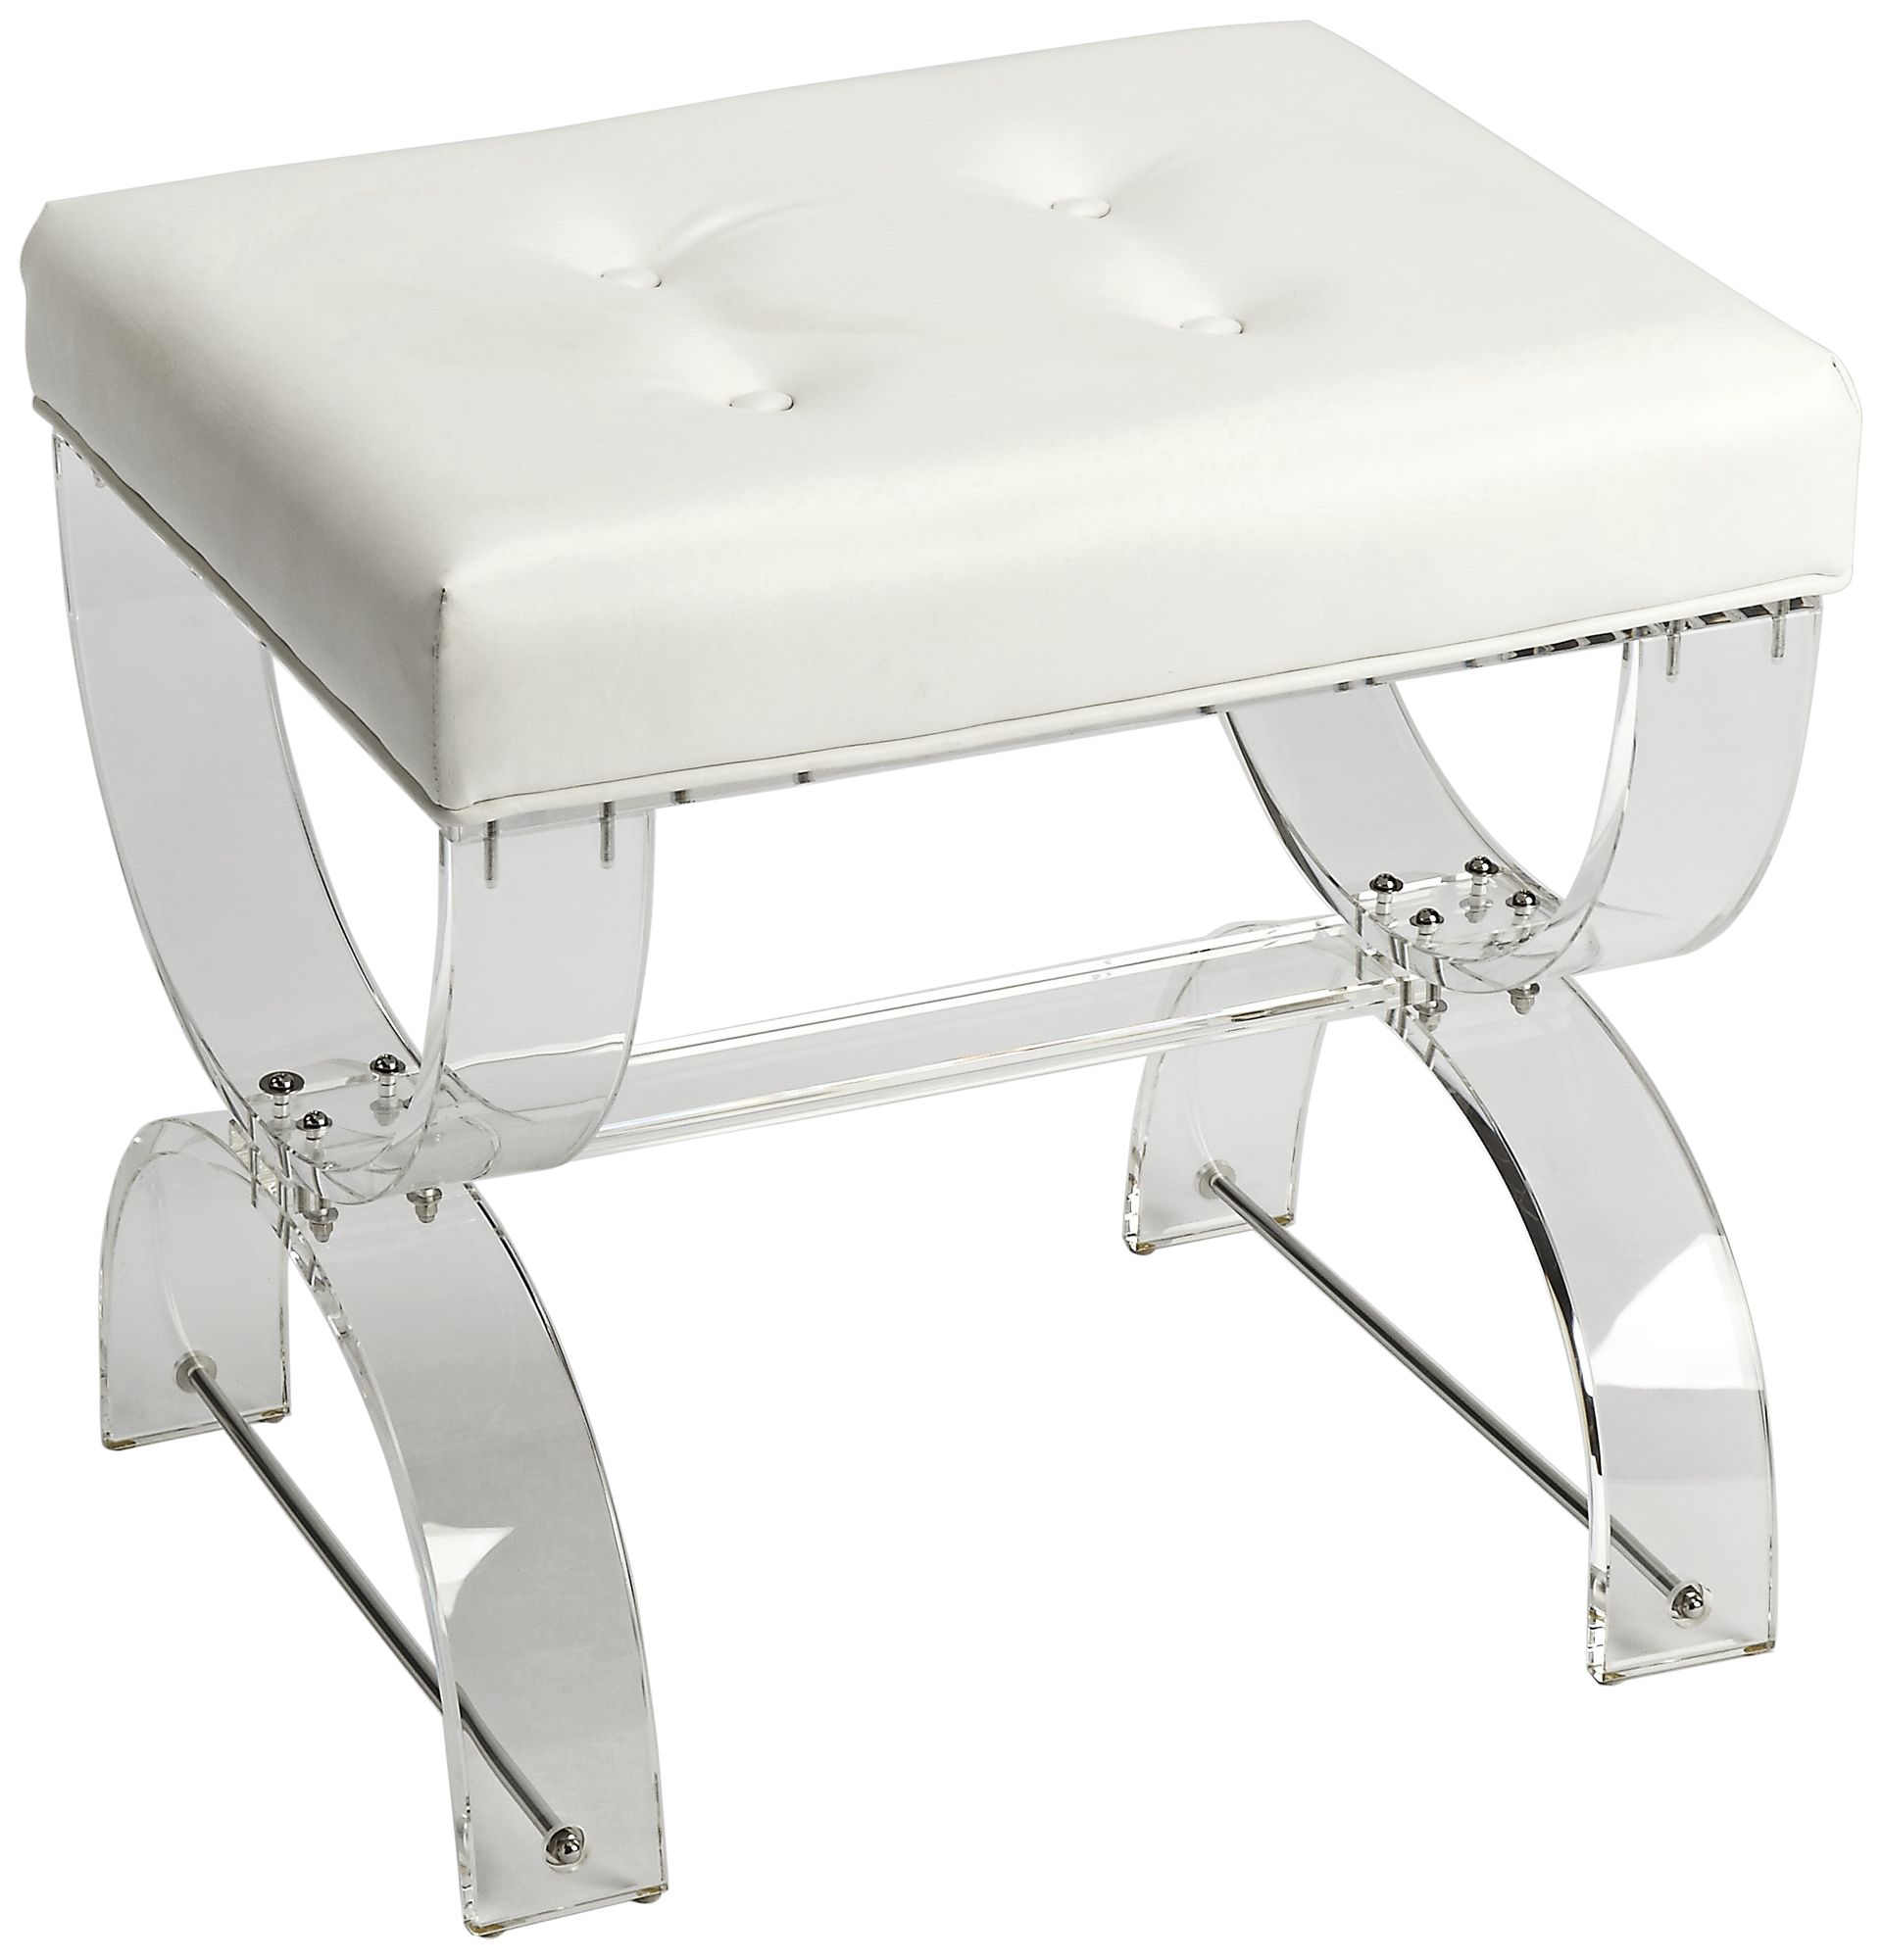 Acrylic Vanity Chair With Wheels By Clear Acrylic Vanity Stool All  Images Butler Morena White And